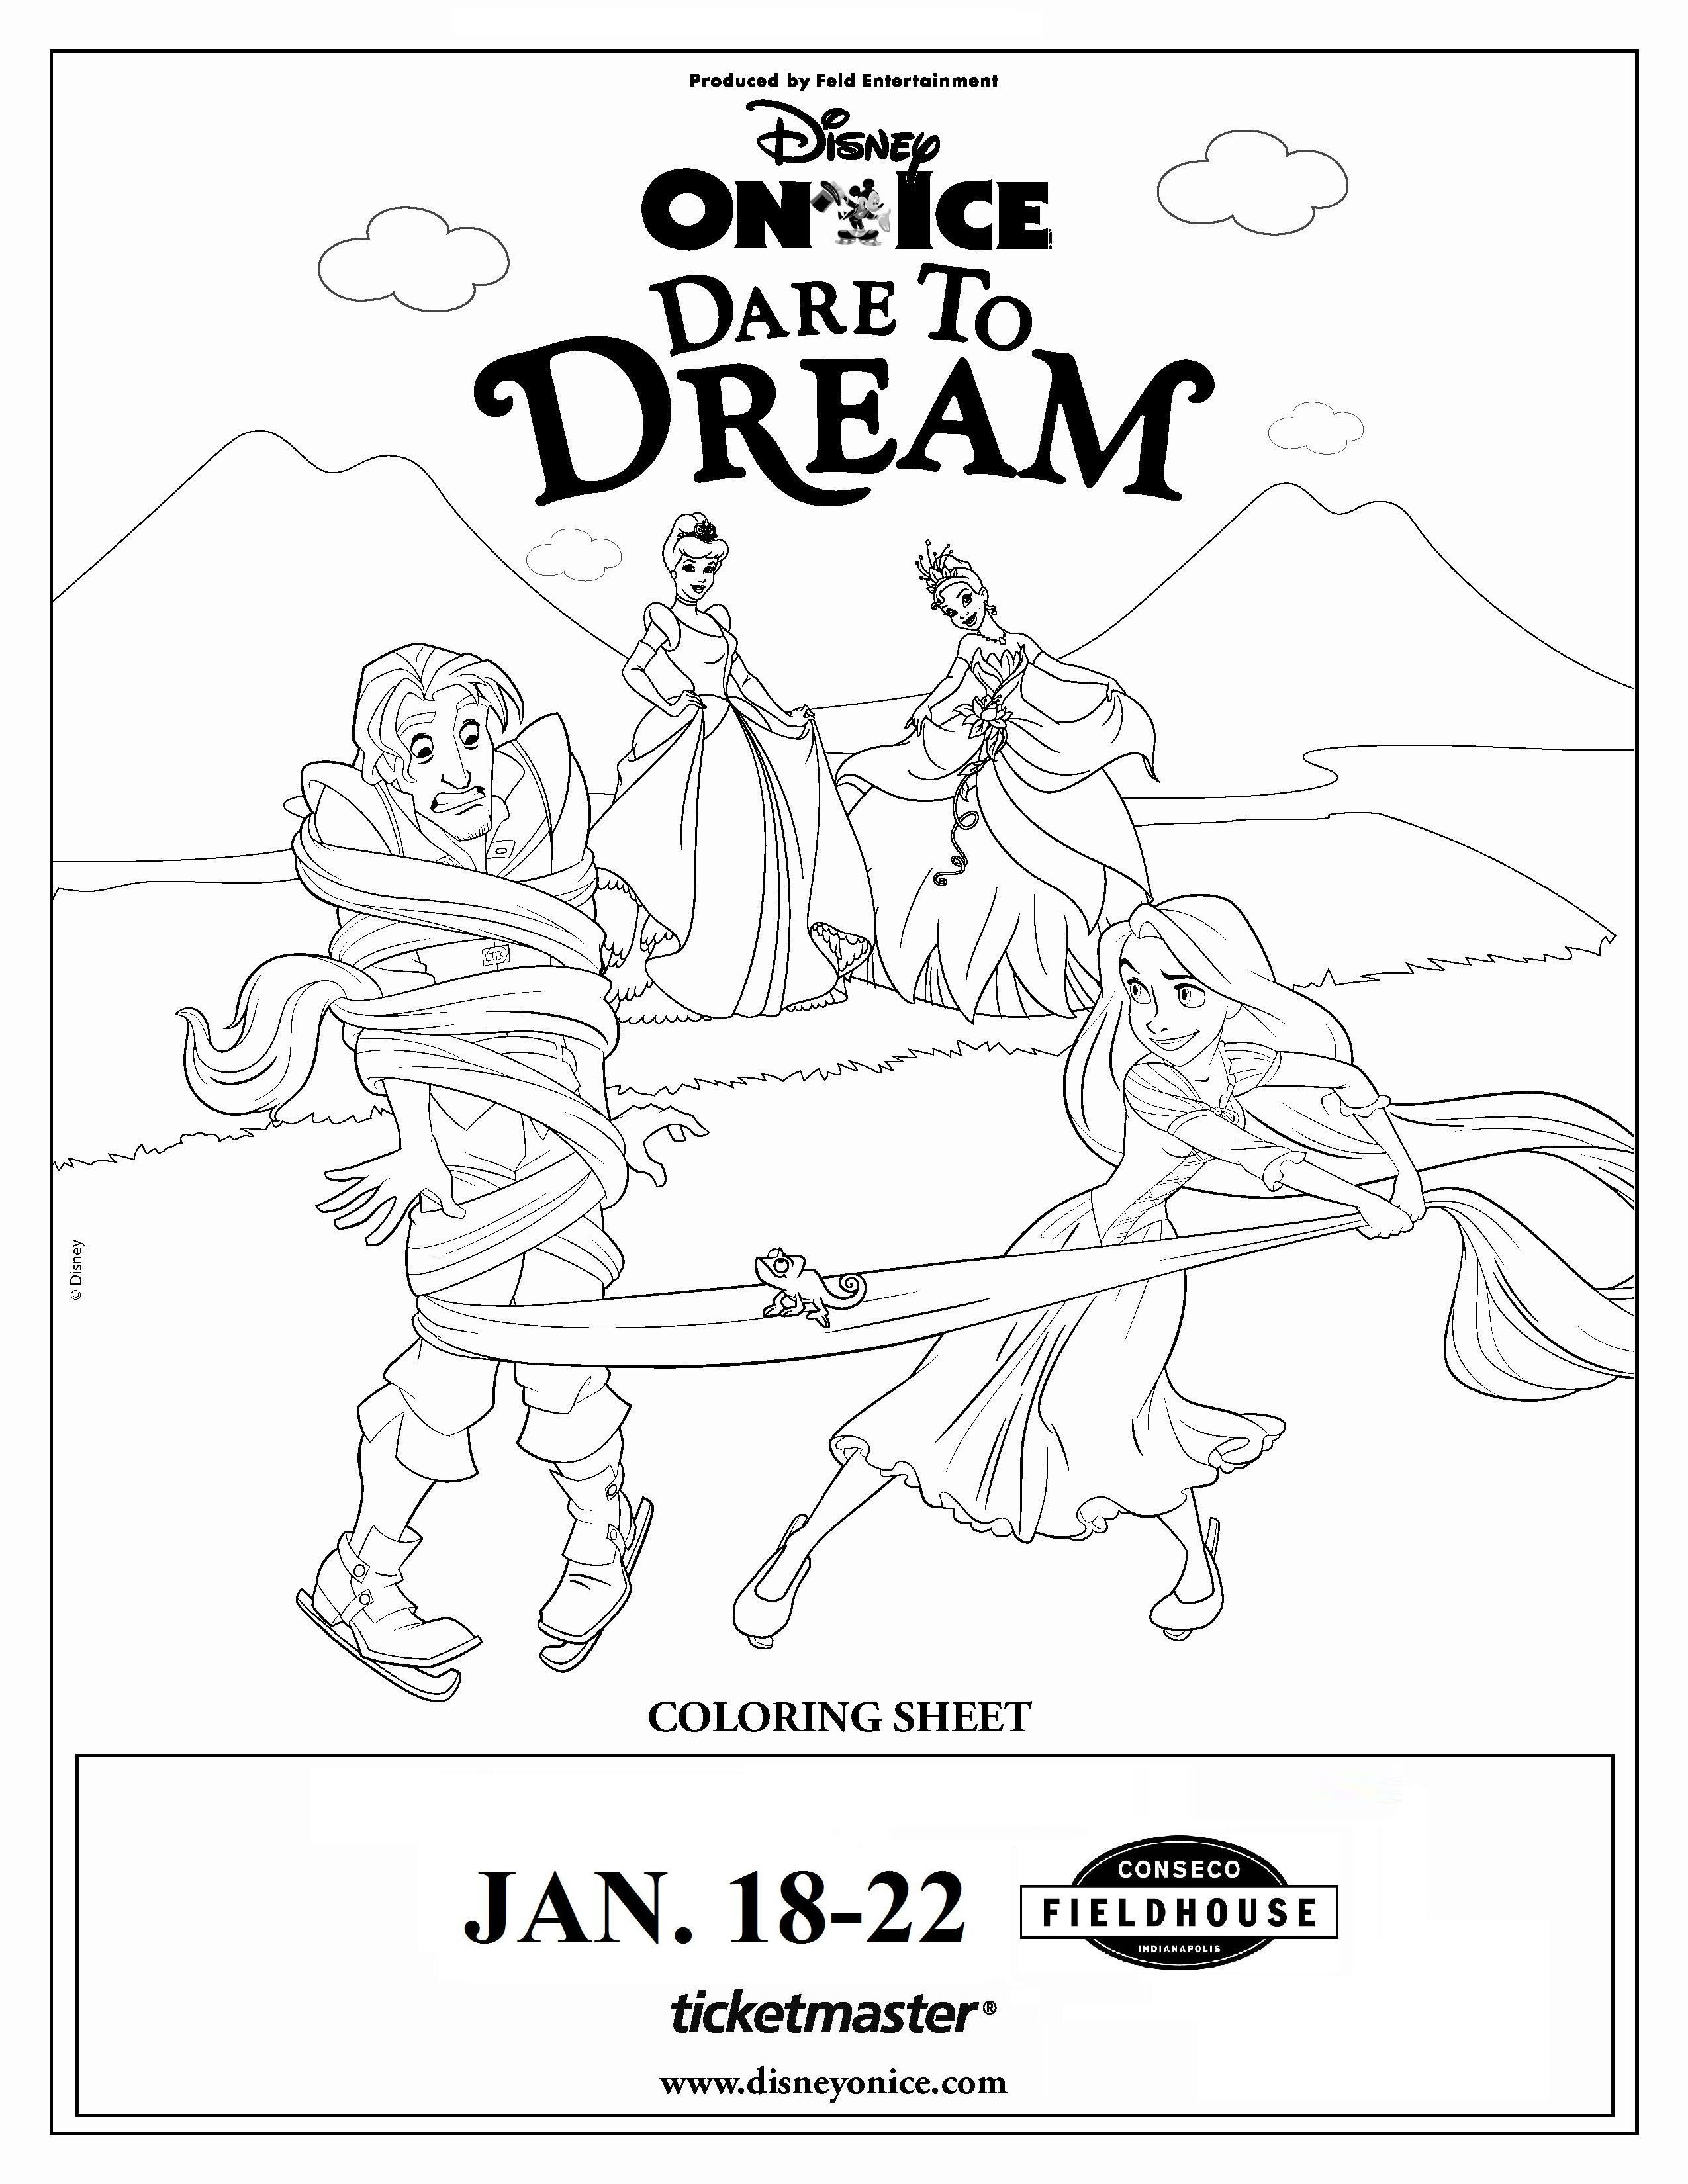 Disney On Ice Dare to Dream poster coloring pages | cute ☞coloring ...